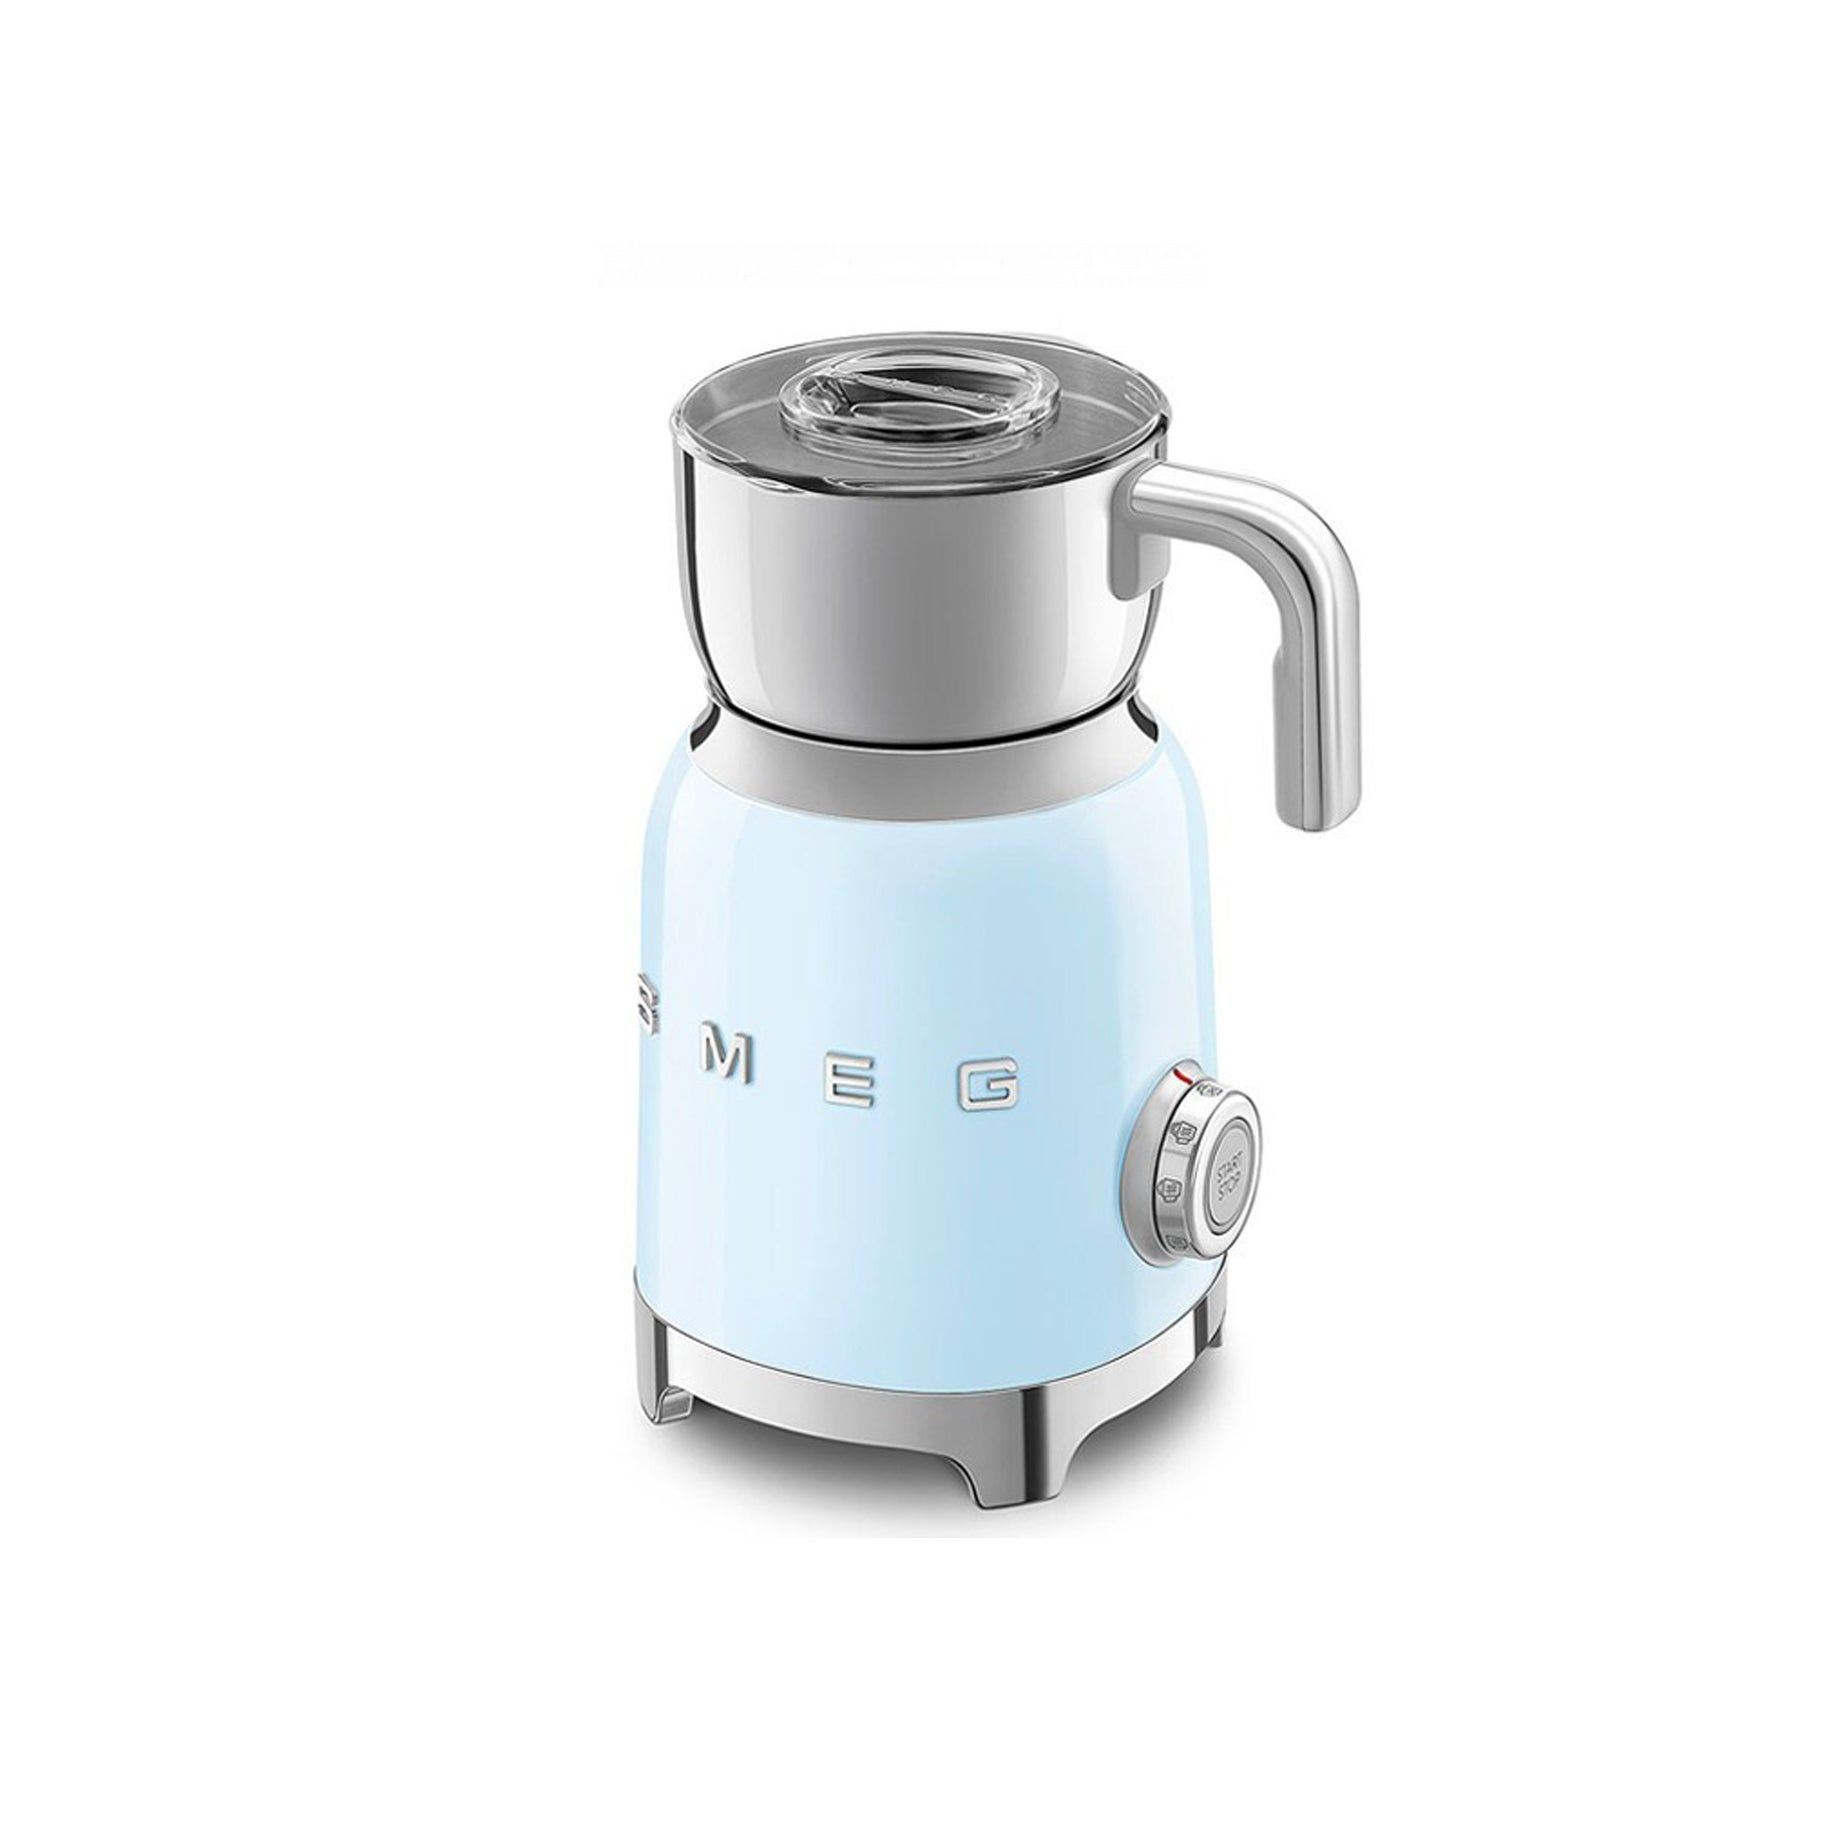 The Best Milk Frother Option: SMEG Milk Frother